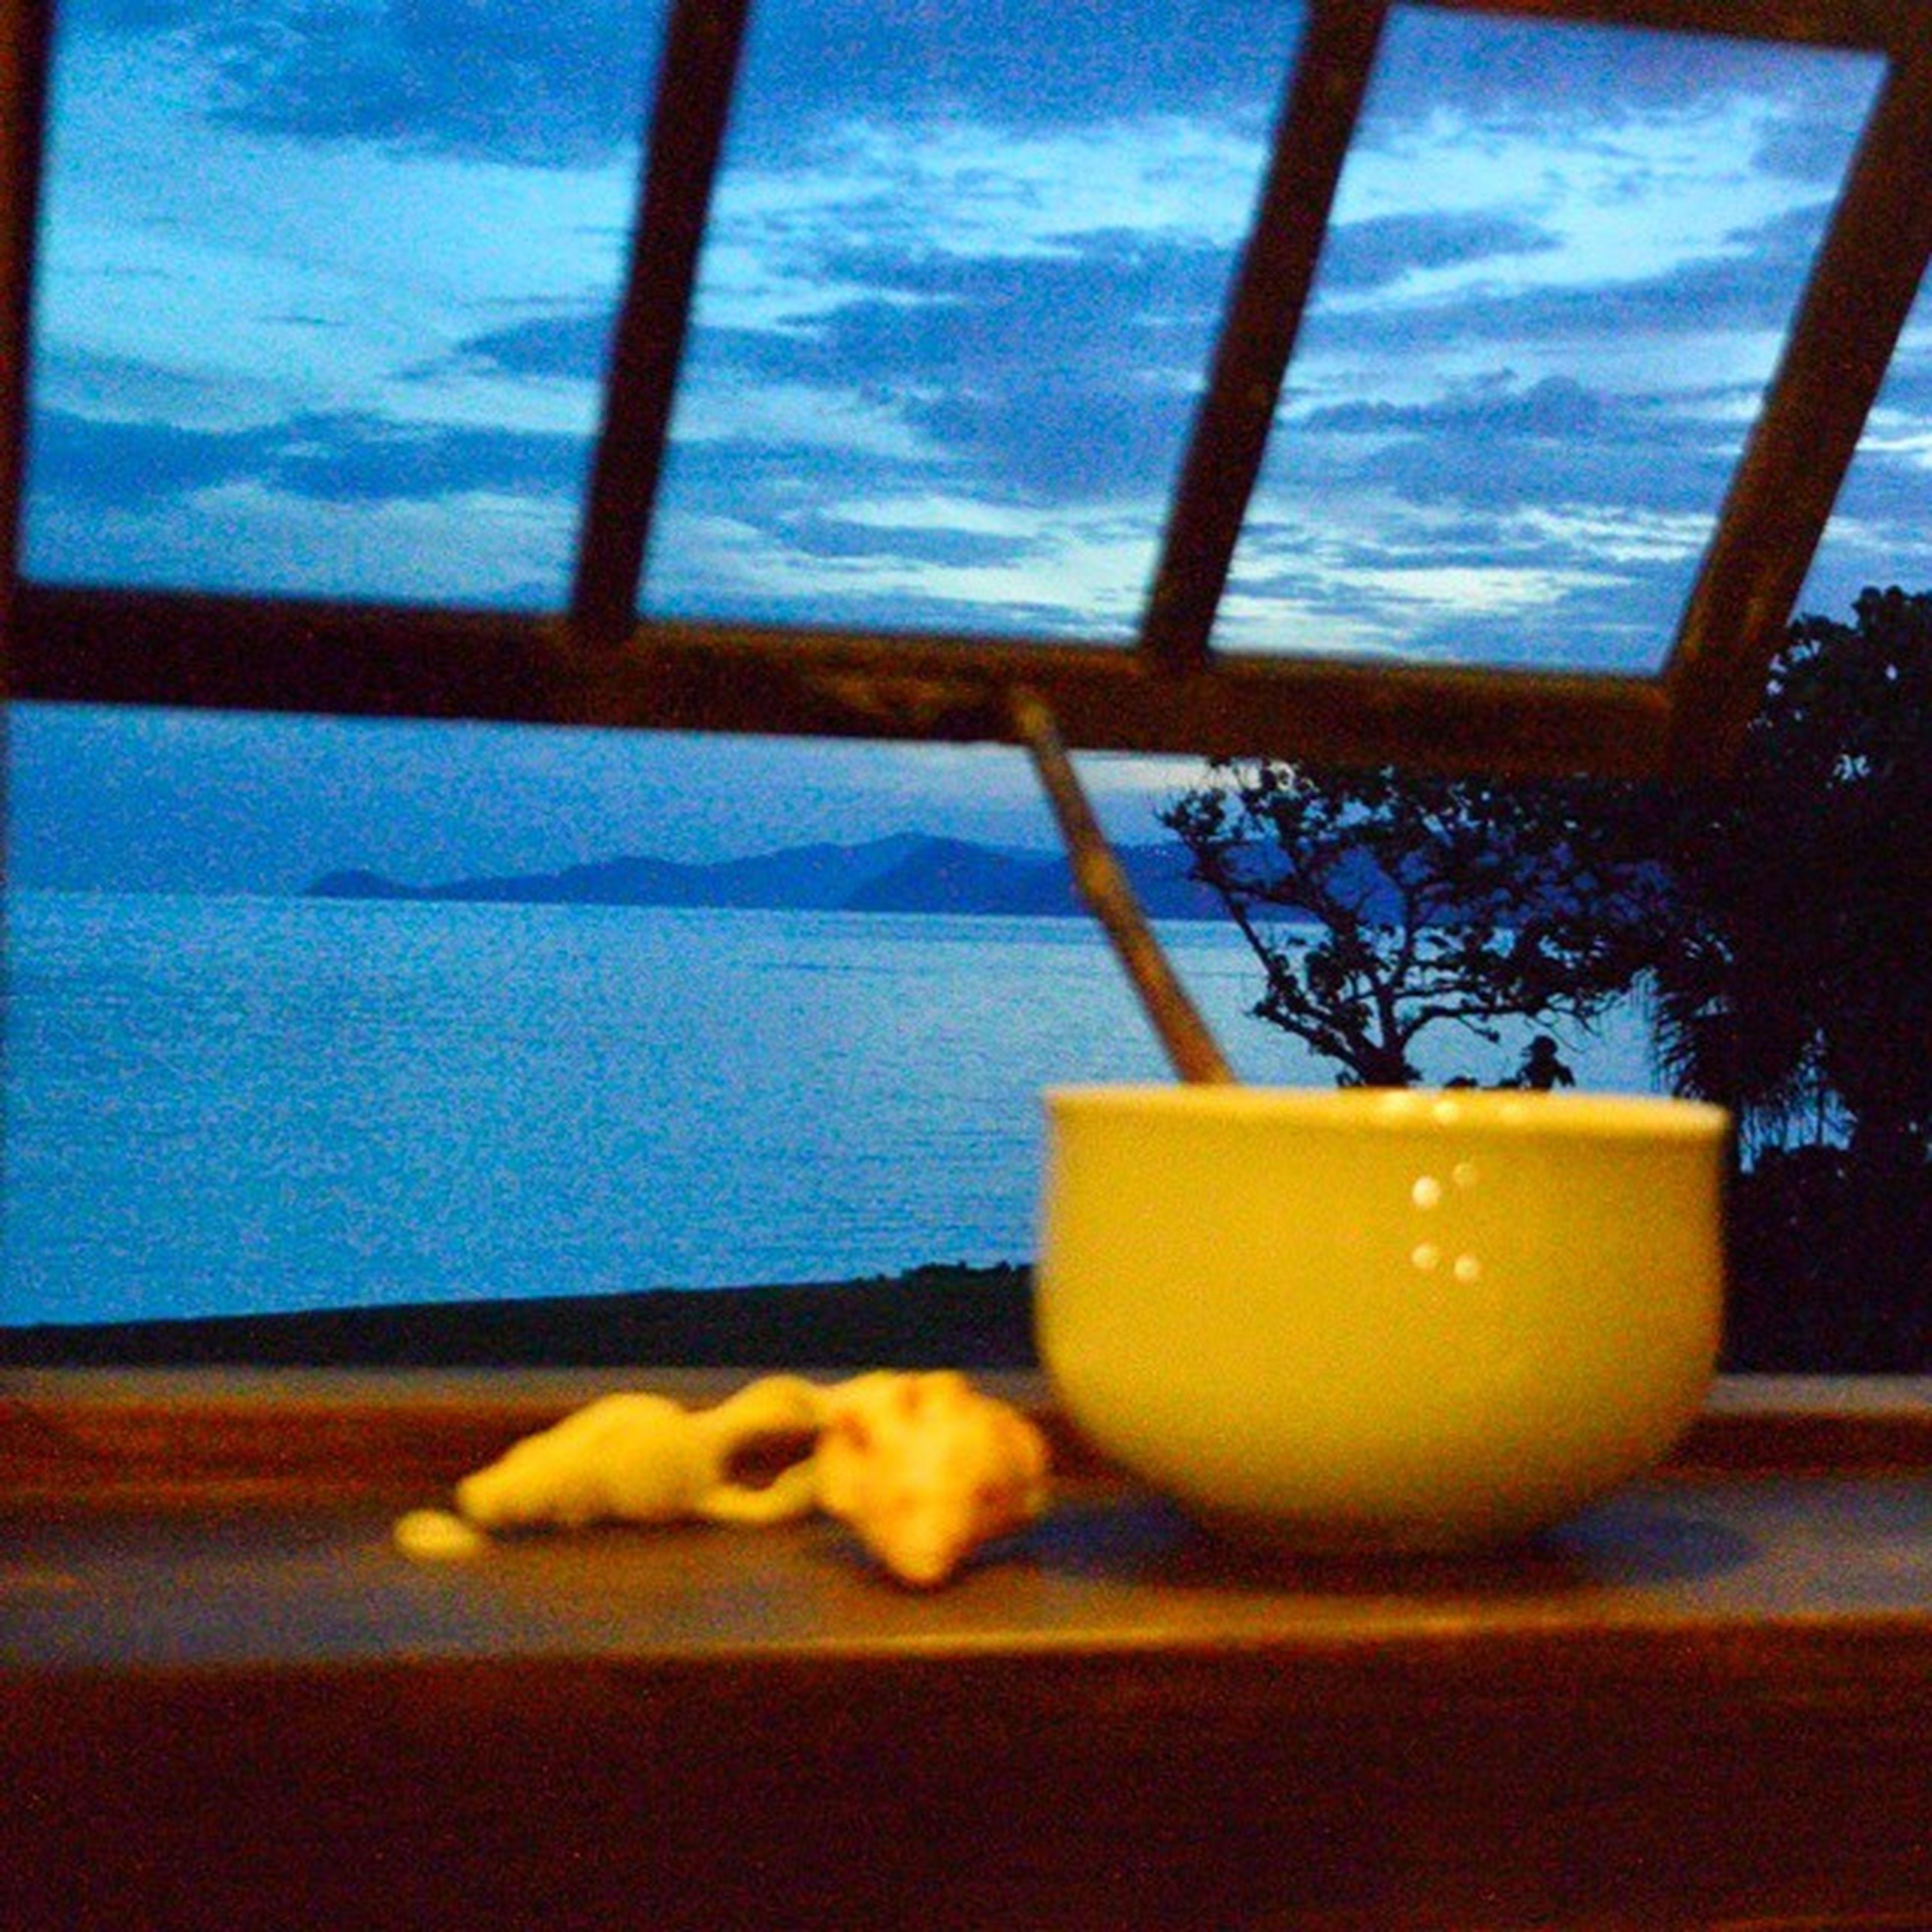 yellow, sky, sea, indoors, water, blue, horizon over water, window, table, close-up, sunset, sunlight, glass - material, transparent, no people, cloud, swimming pool, day, absence, part of